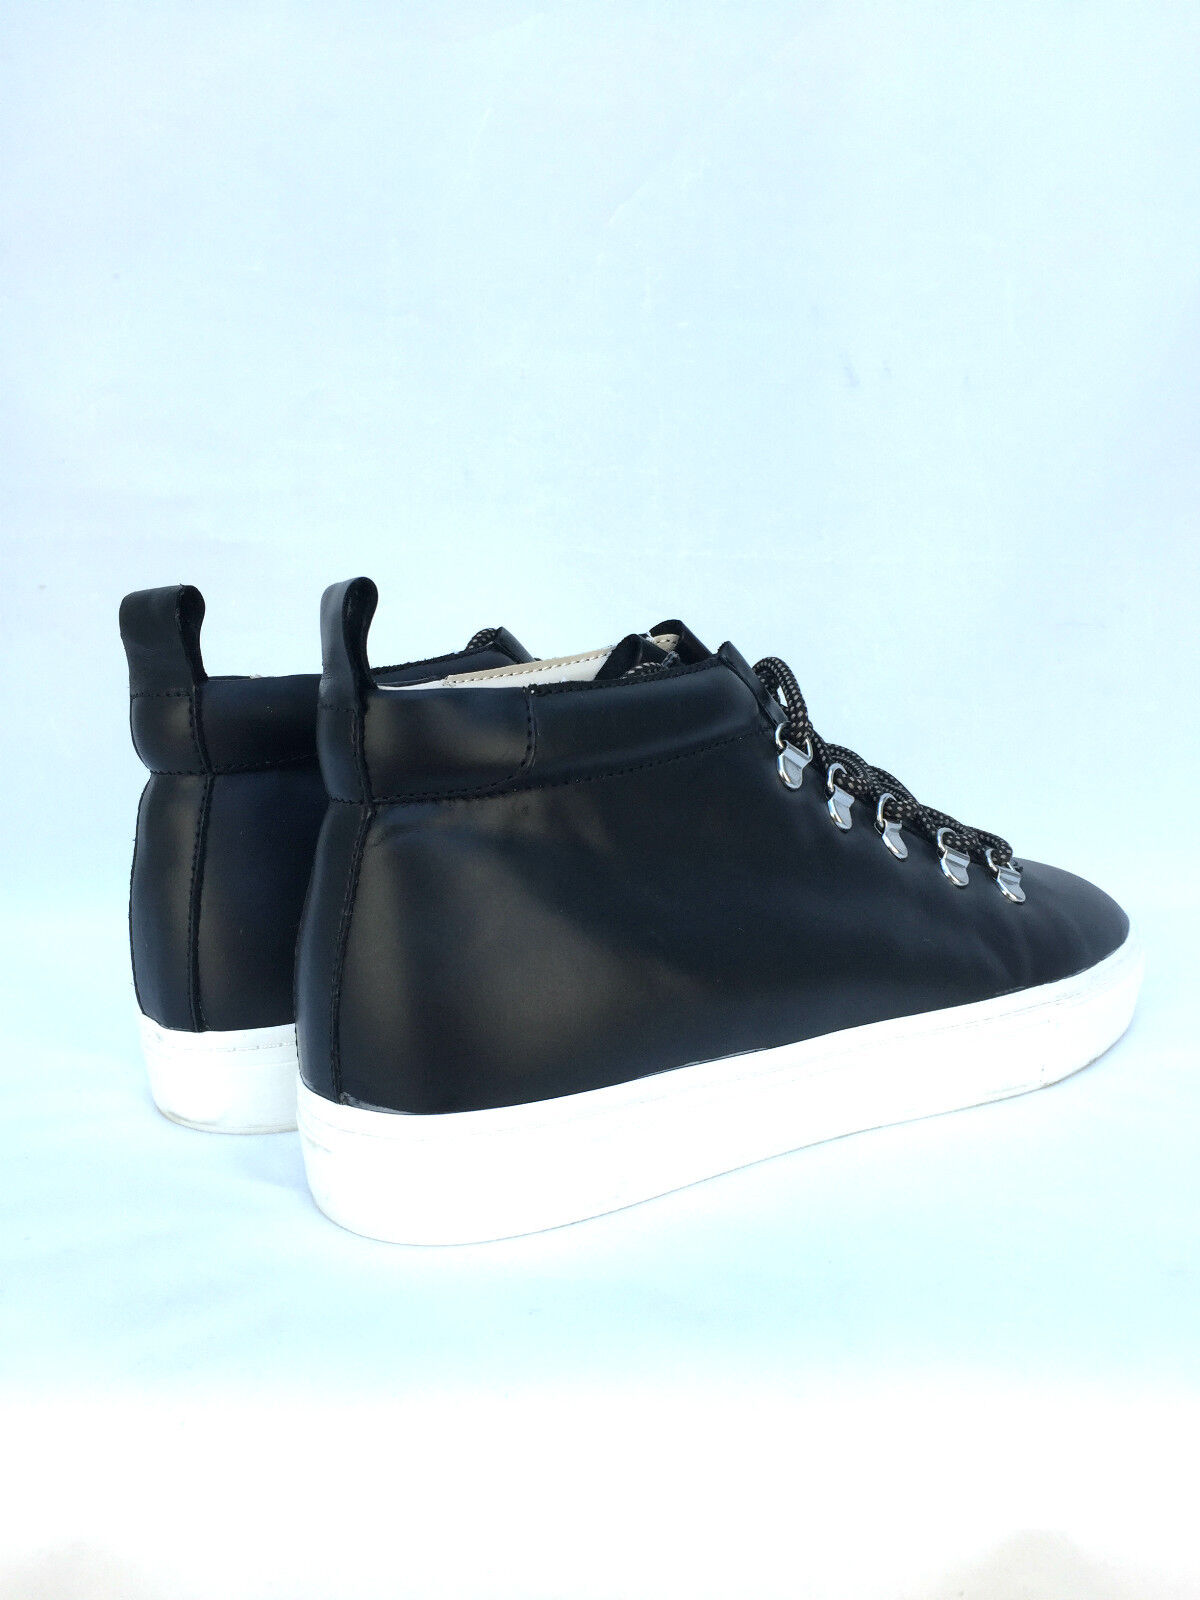 ZARA SNEAKERS Damenschuhe BLACK LEATHER HIGH TOP SNEAKERS ZARA TRAINERS SIZE UK5 UK7 a57fff